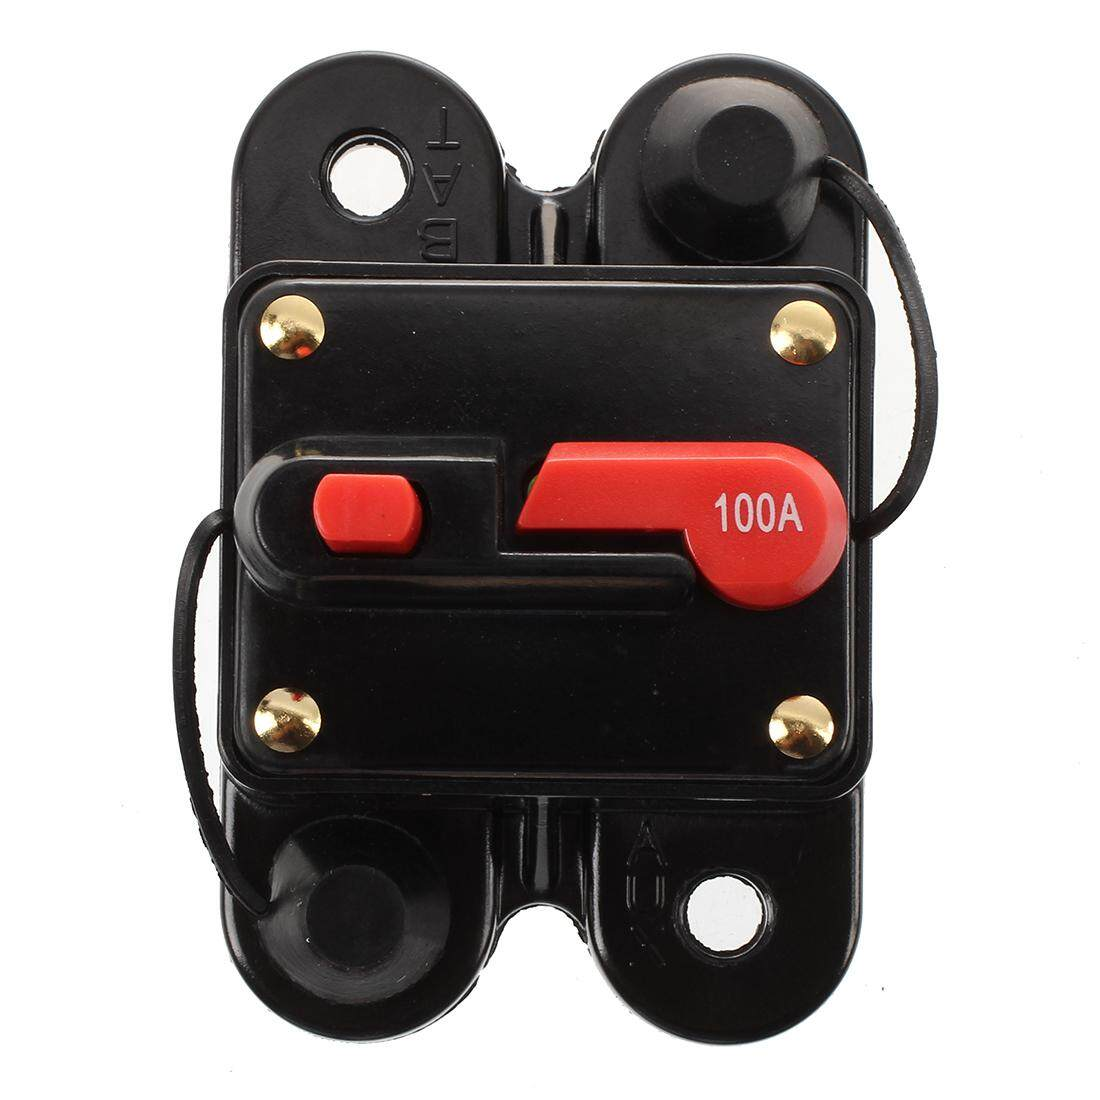 Features 100a Universal Car Auto Audio Power Fuse Amplifier Holder Box 12 24v Dc Breaker Kfz Assurance